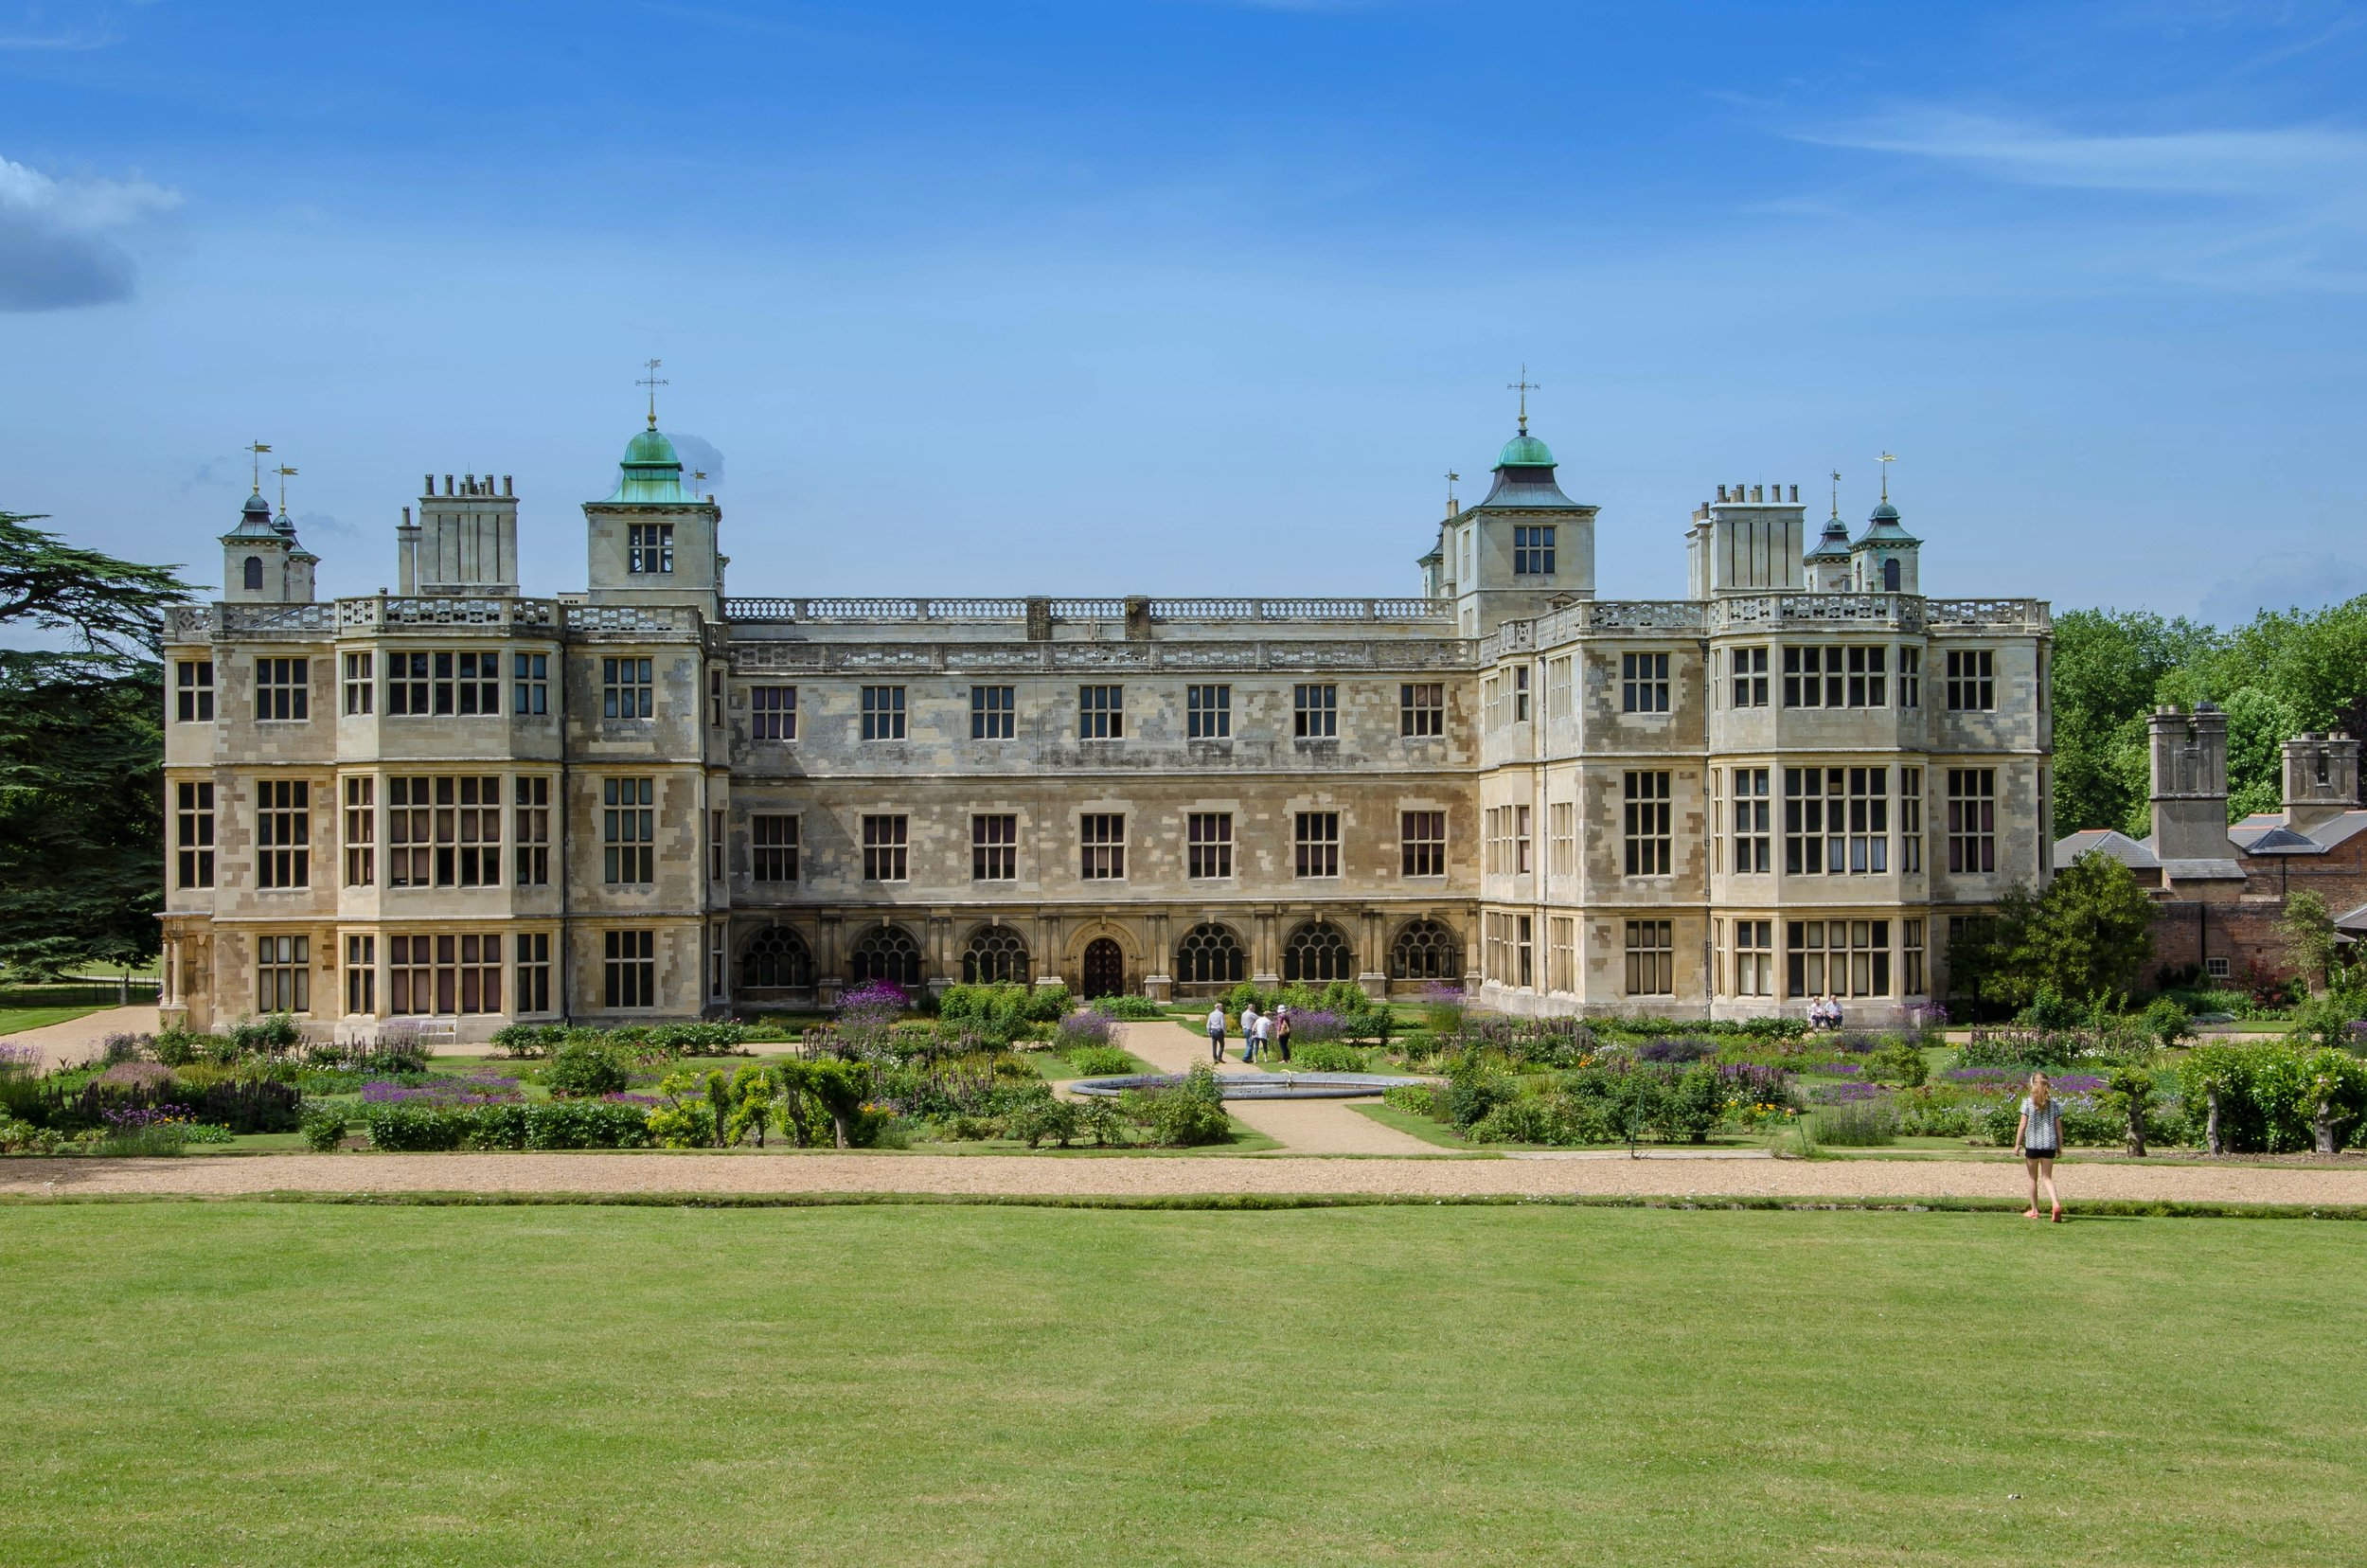 Audley End House & Gardens, located off London Road, Saffron Walden, Essex, CB11 4JF